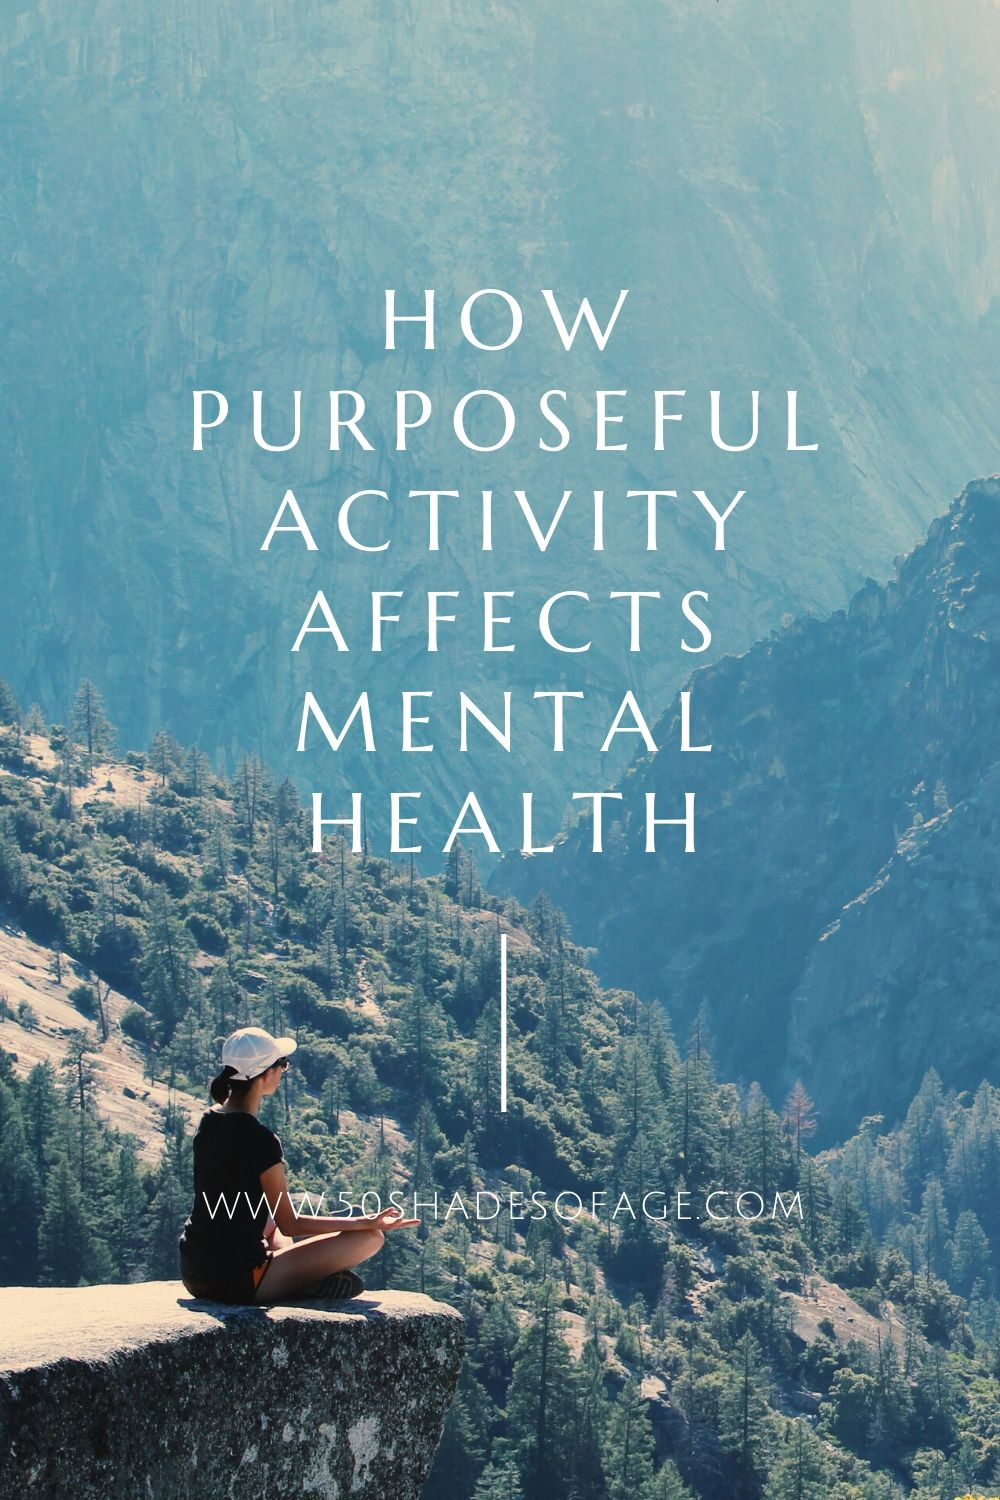 How Purposeful Activity Affects Mental Health